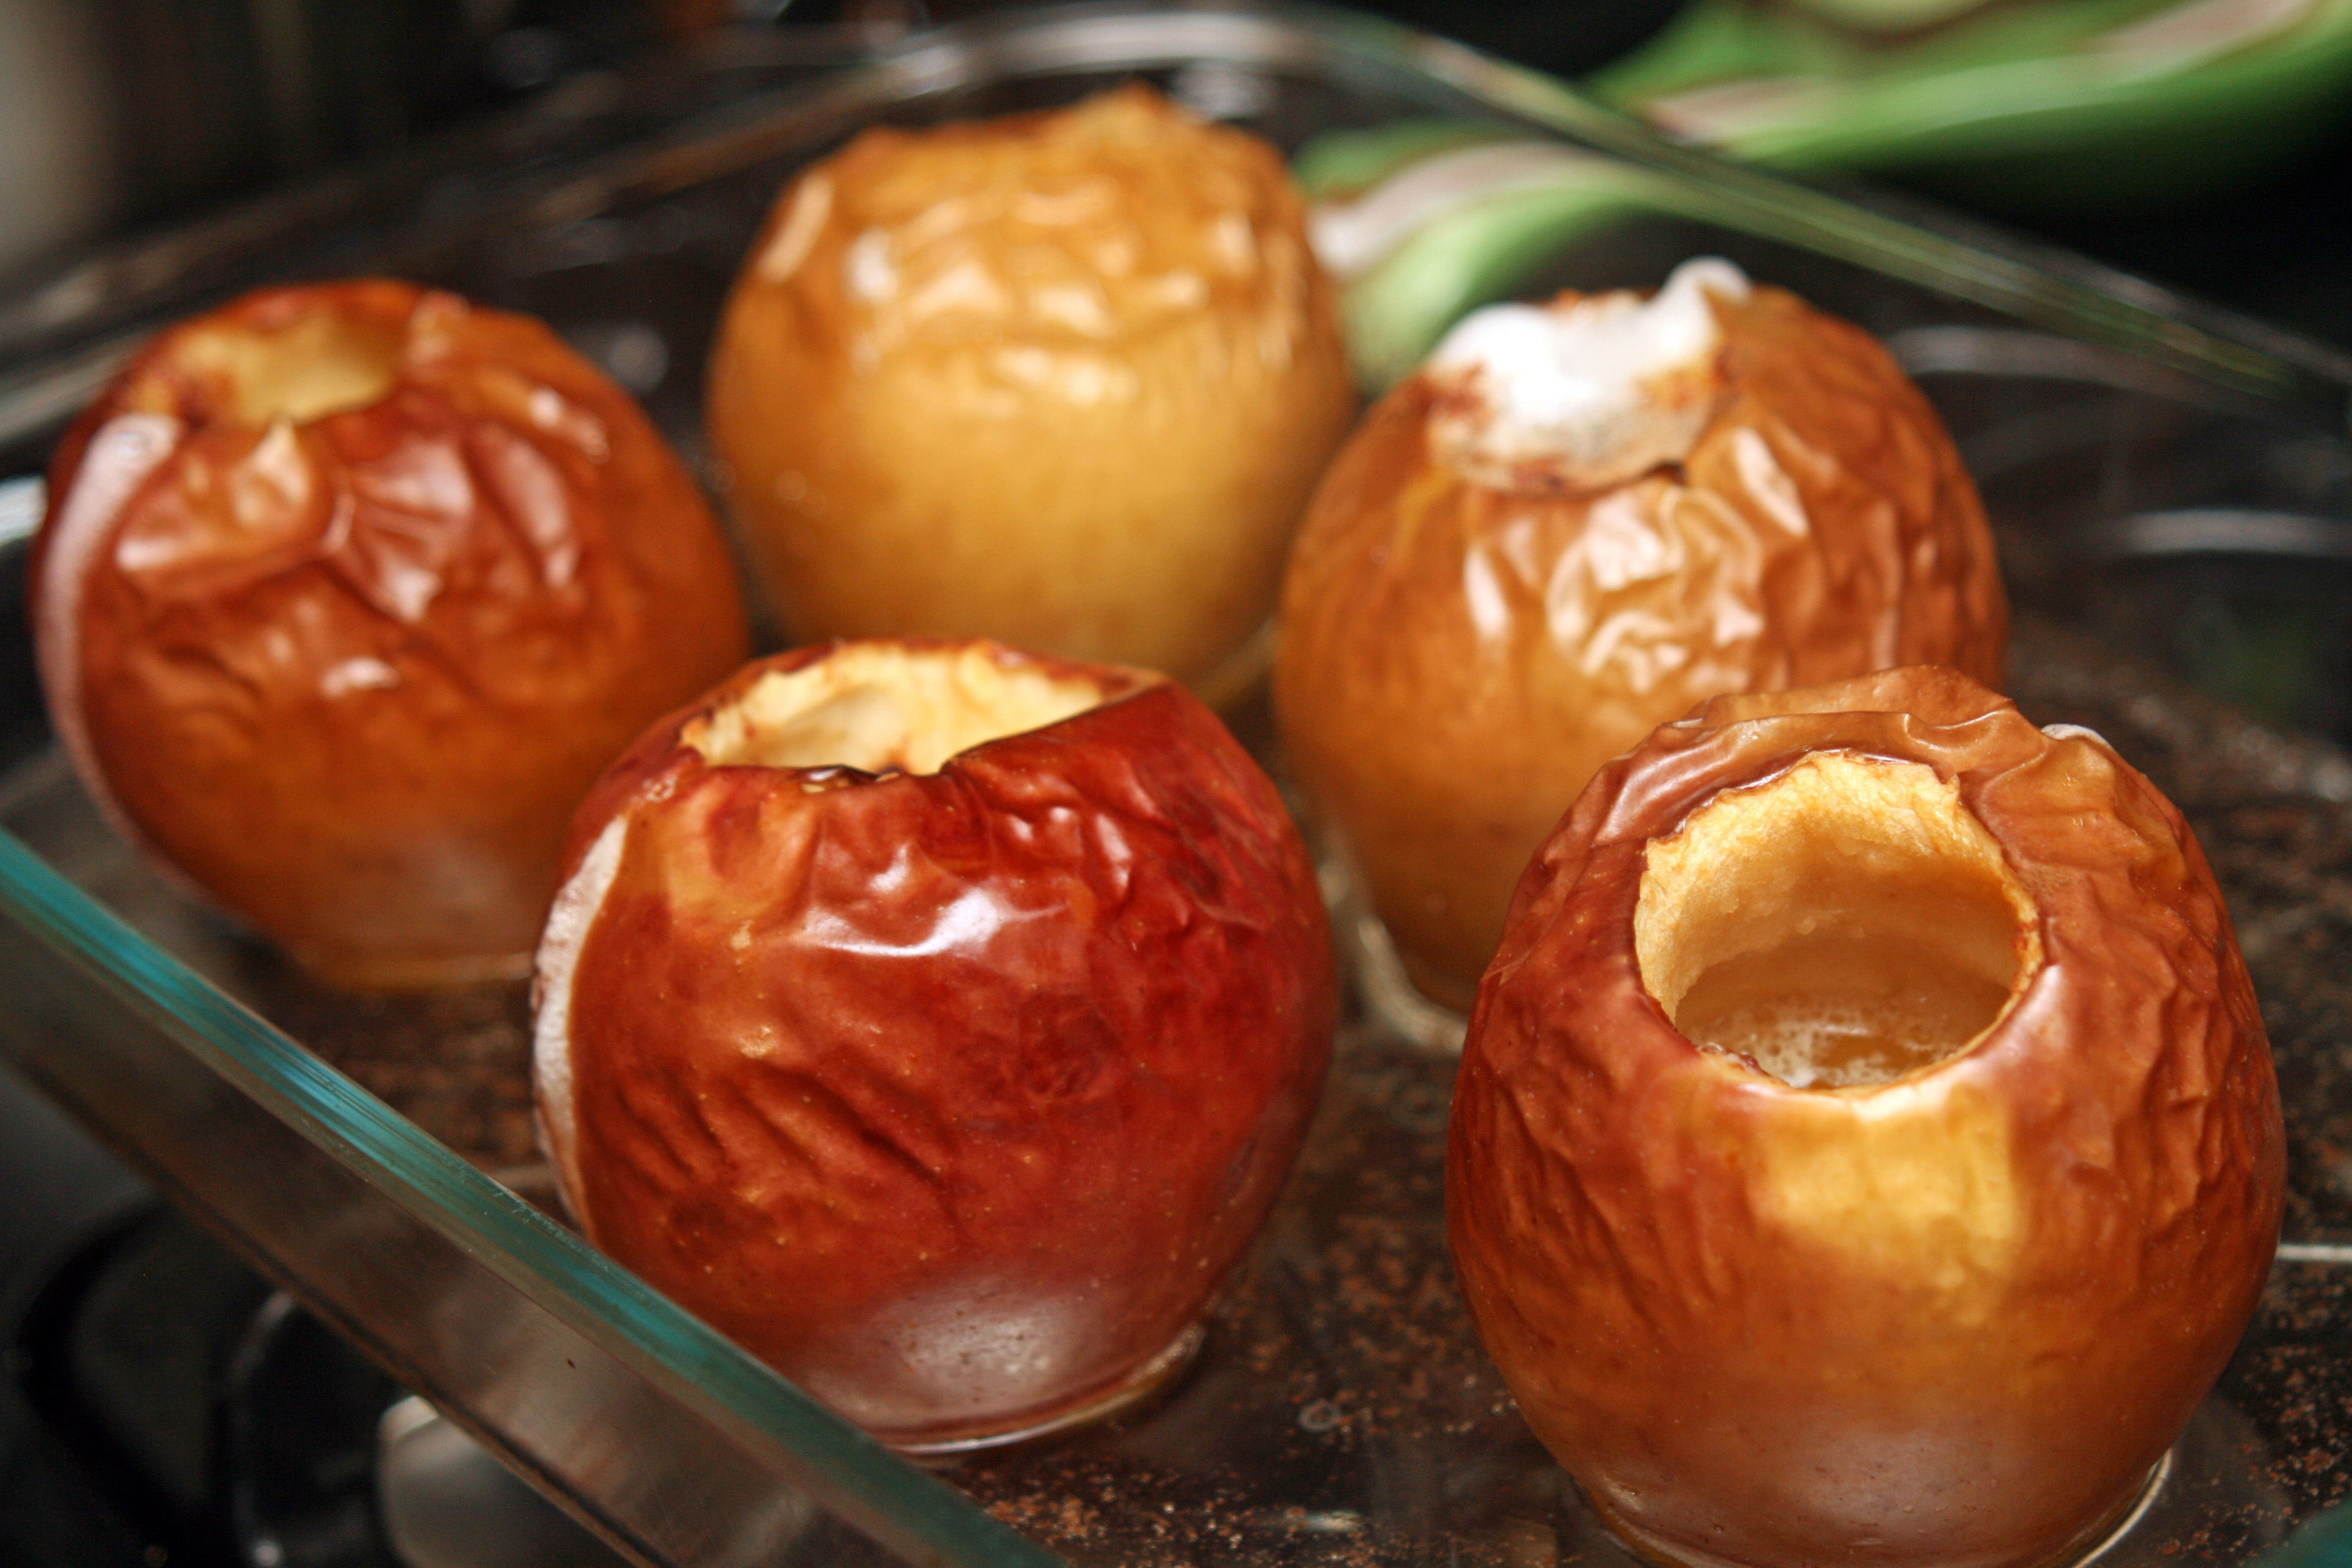 The Versatile Baked Apple